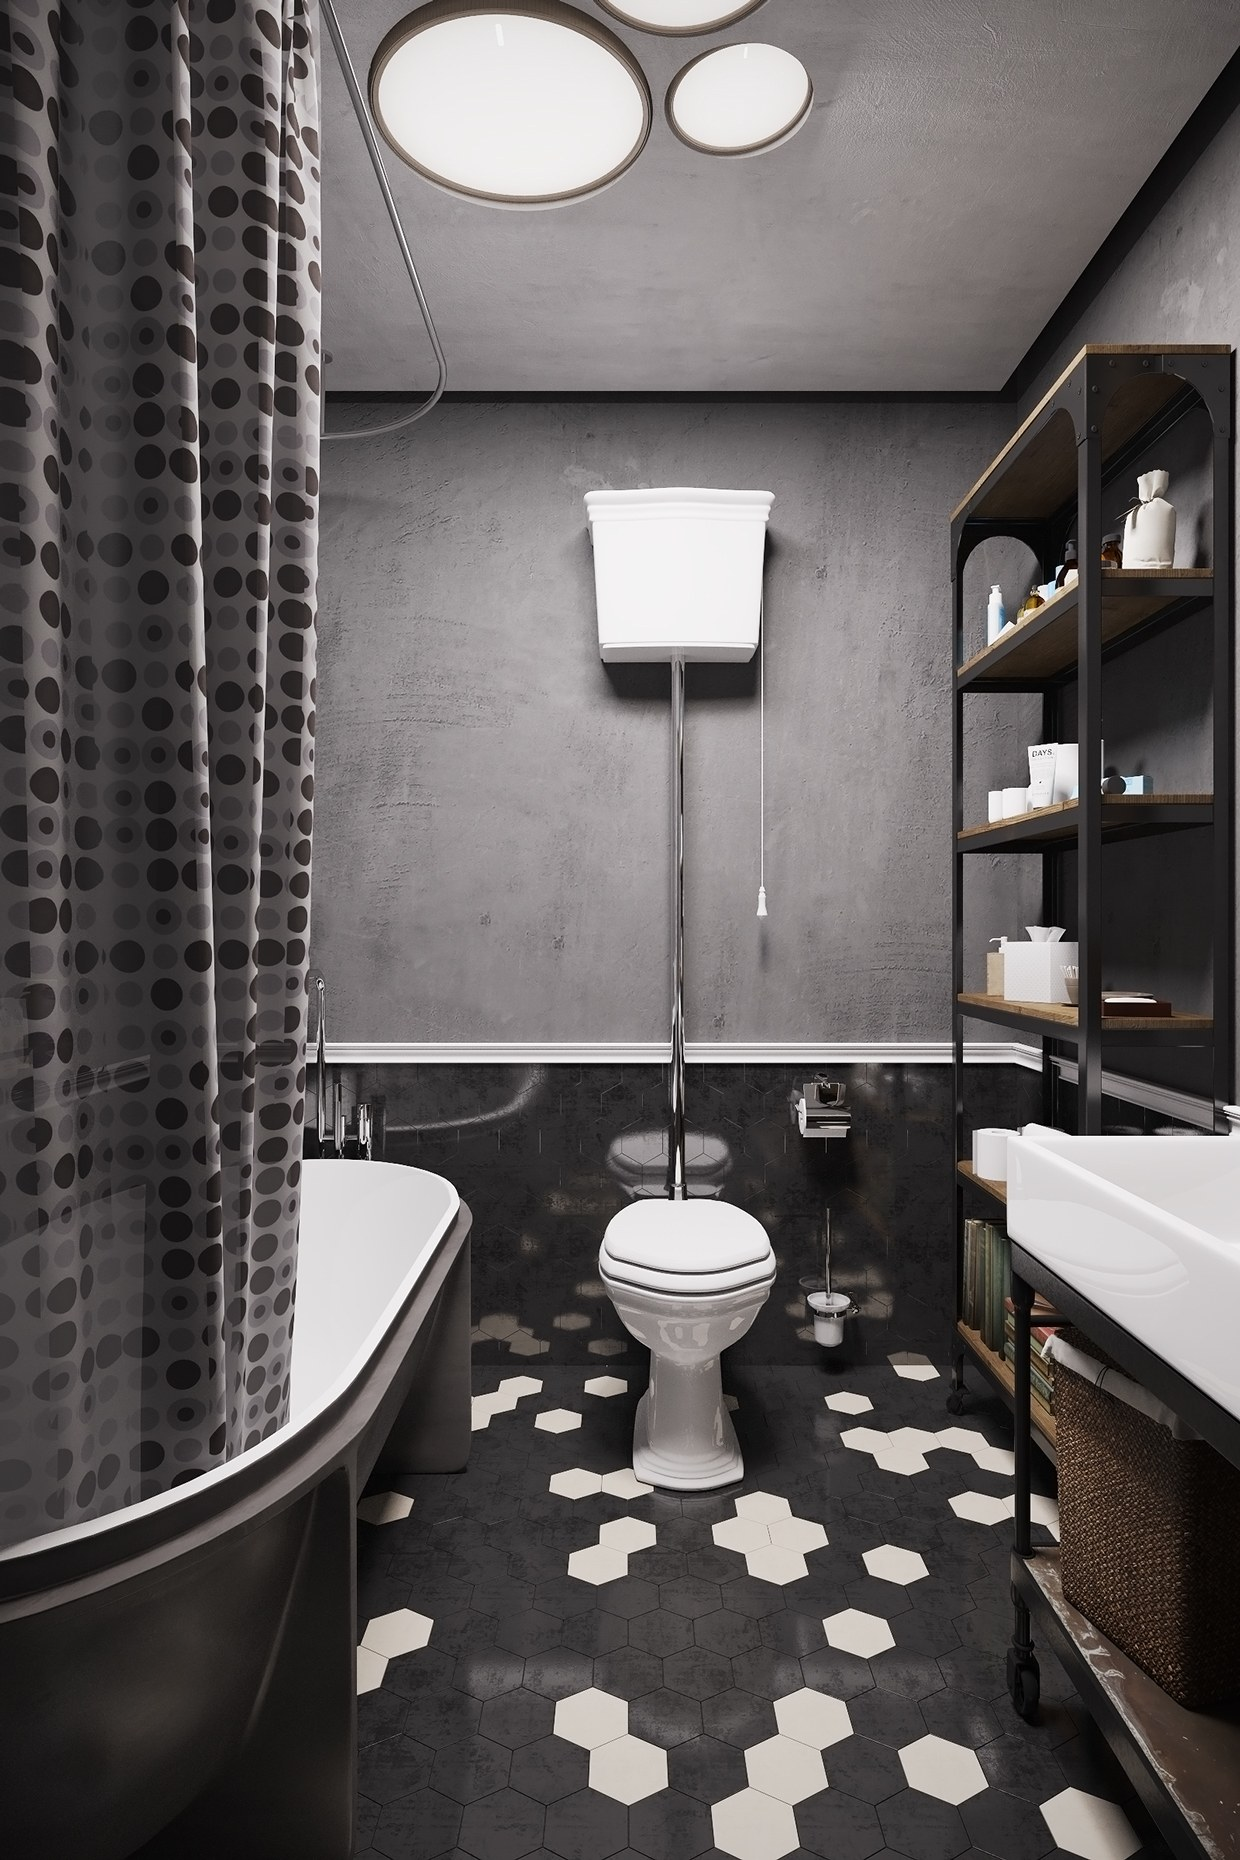 Tiled Bathroom - A hipster inspired design concept for russian gaming magazine editor